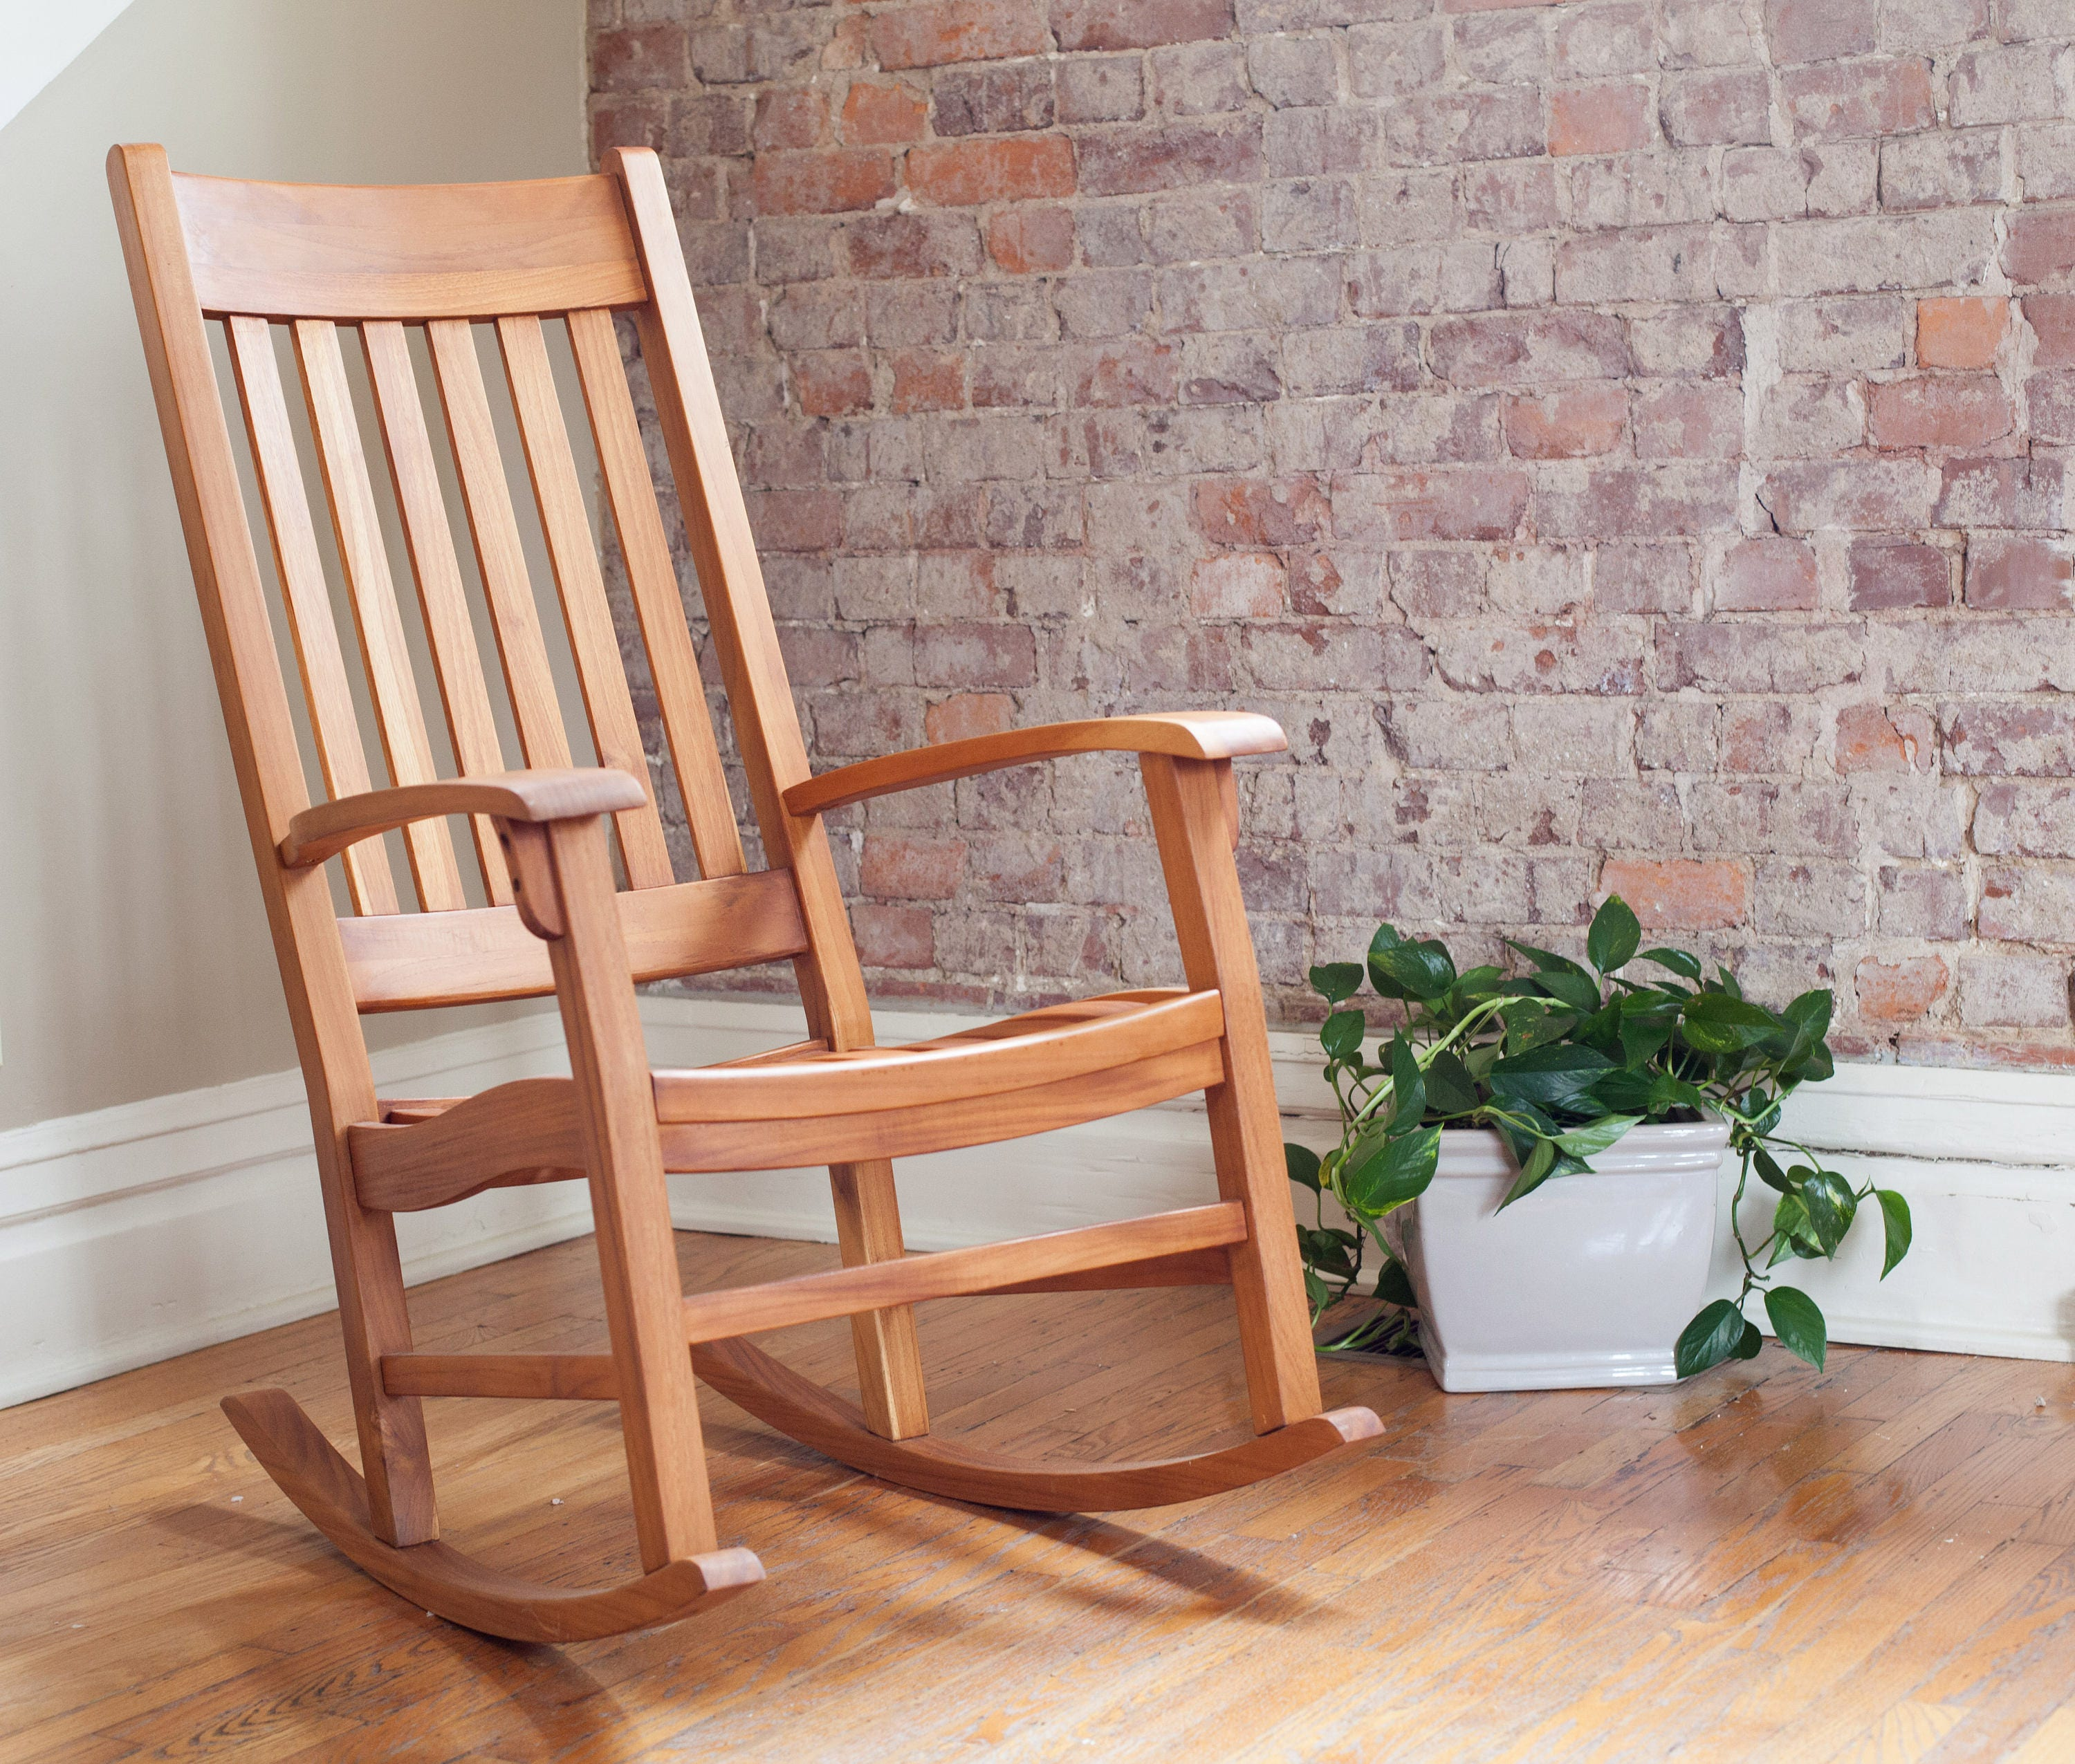 rocking chair rocking chairs outdoor wood furniture patio